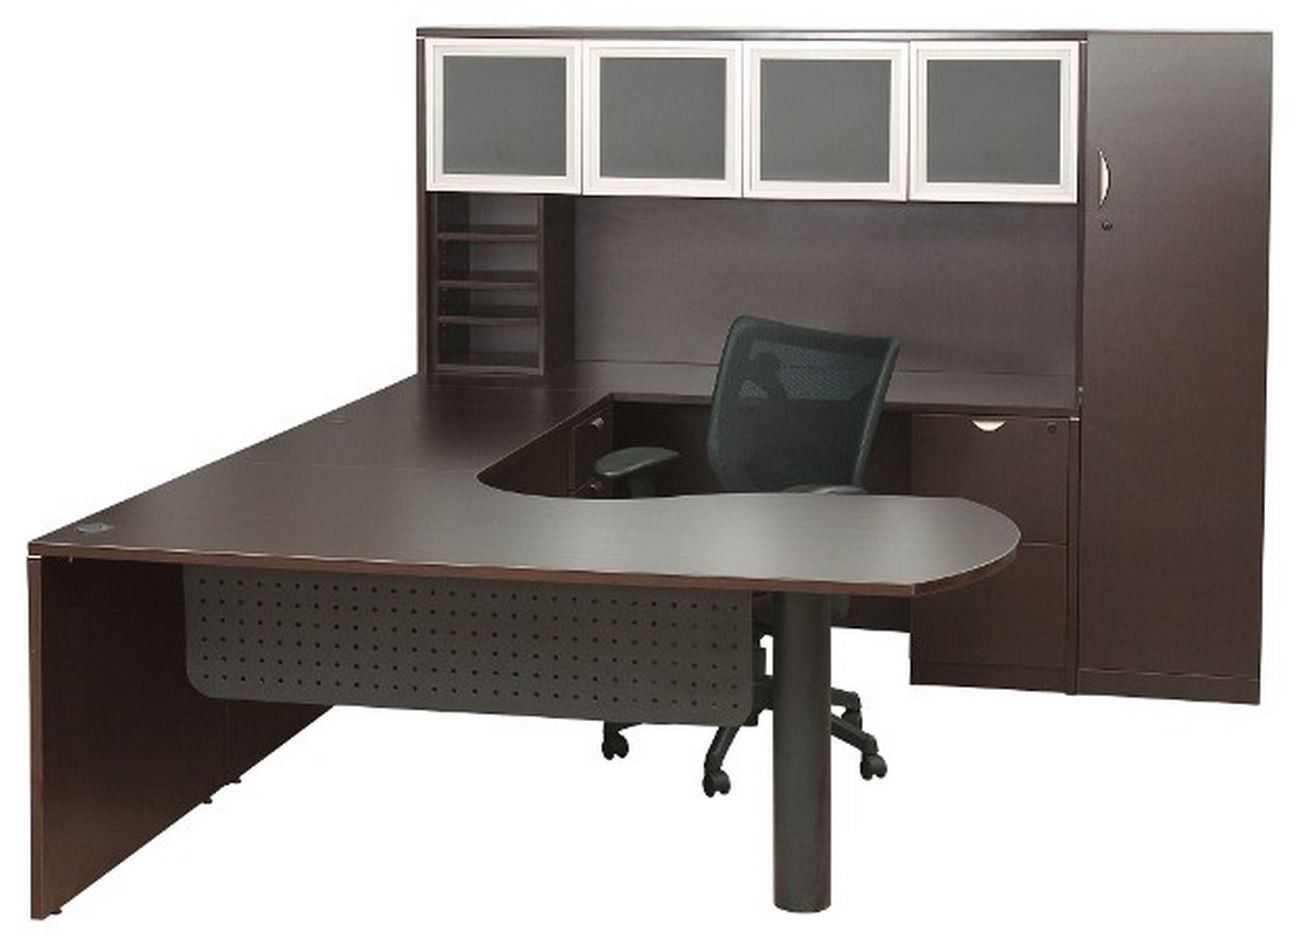 The New Express Laminate U Shape W/ Glass Hutch Is A Great Addition To Any  Office. Click The Link To Learn More About This And Our Other Great Office  ...